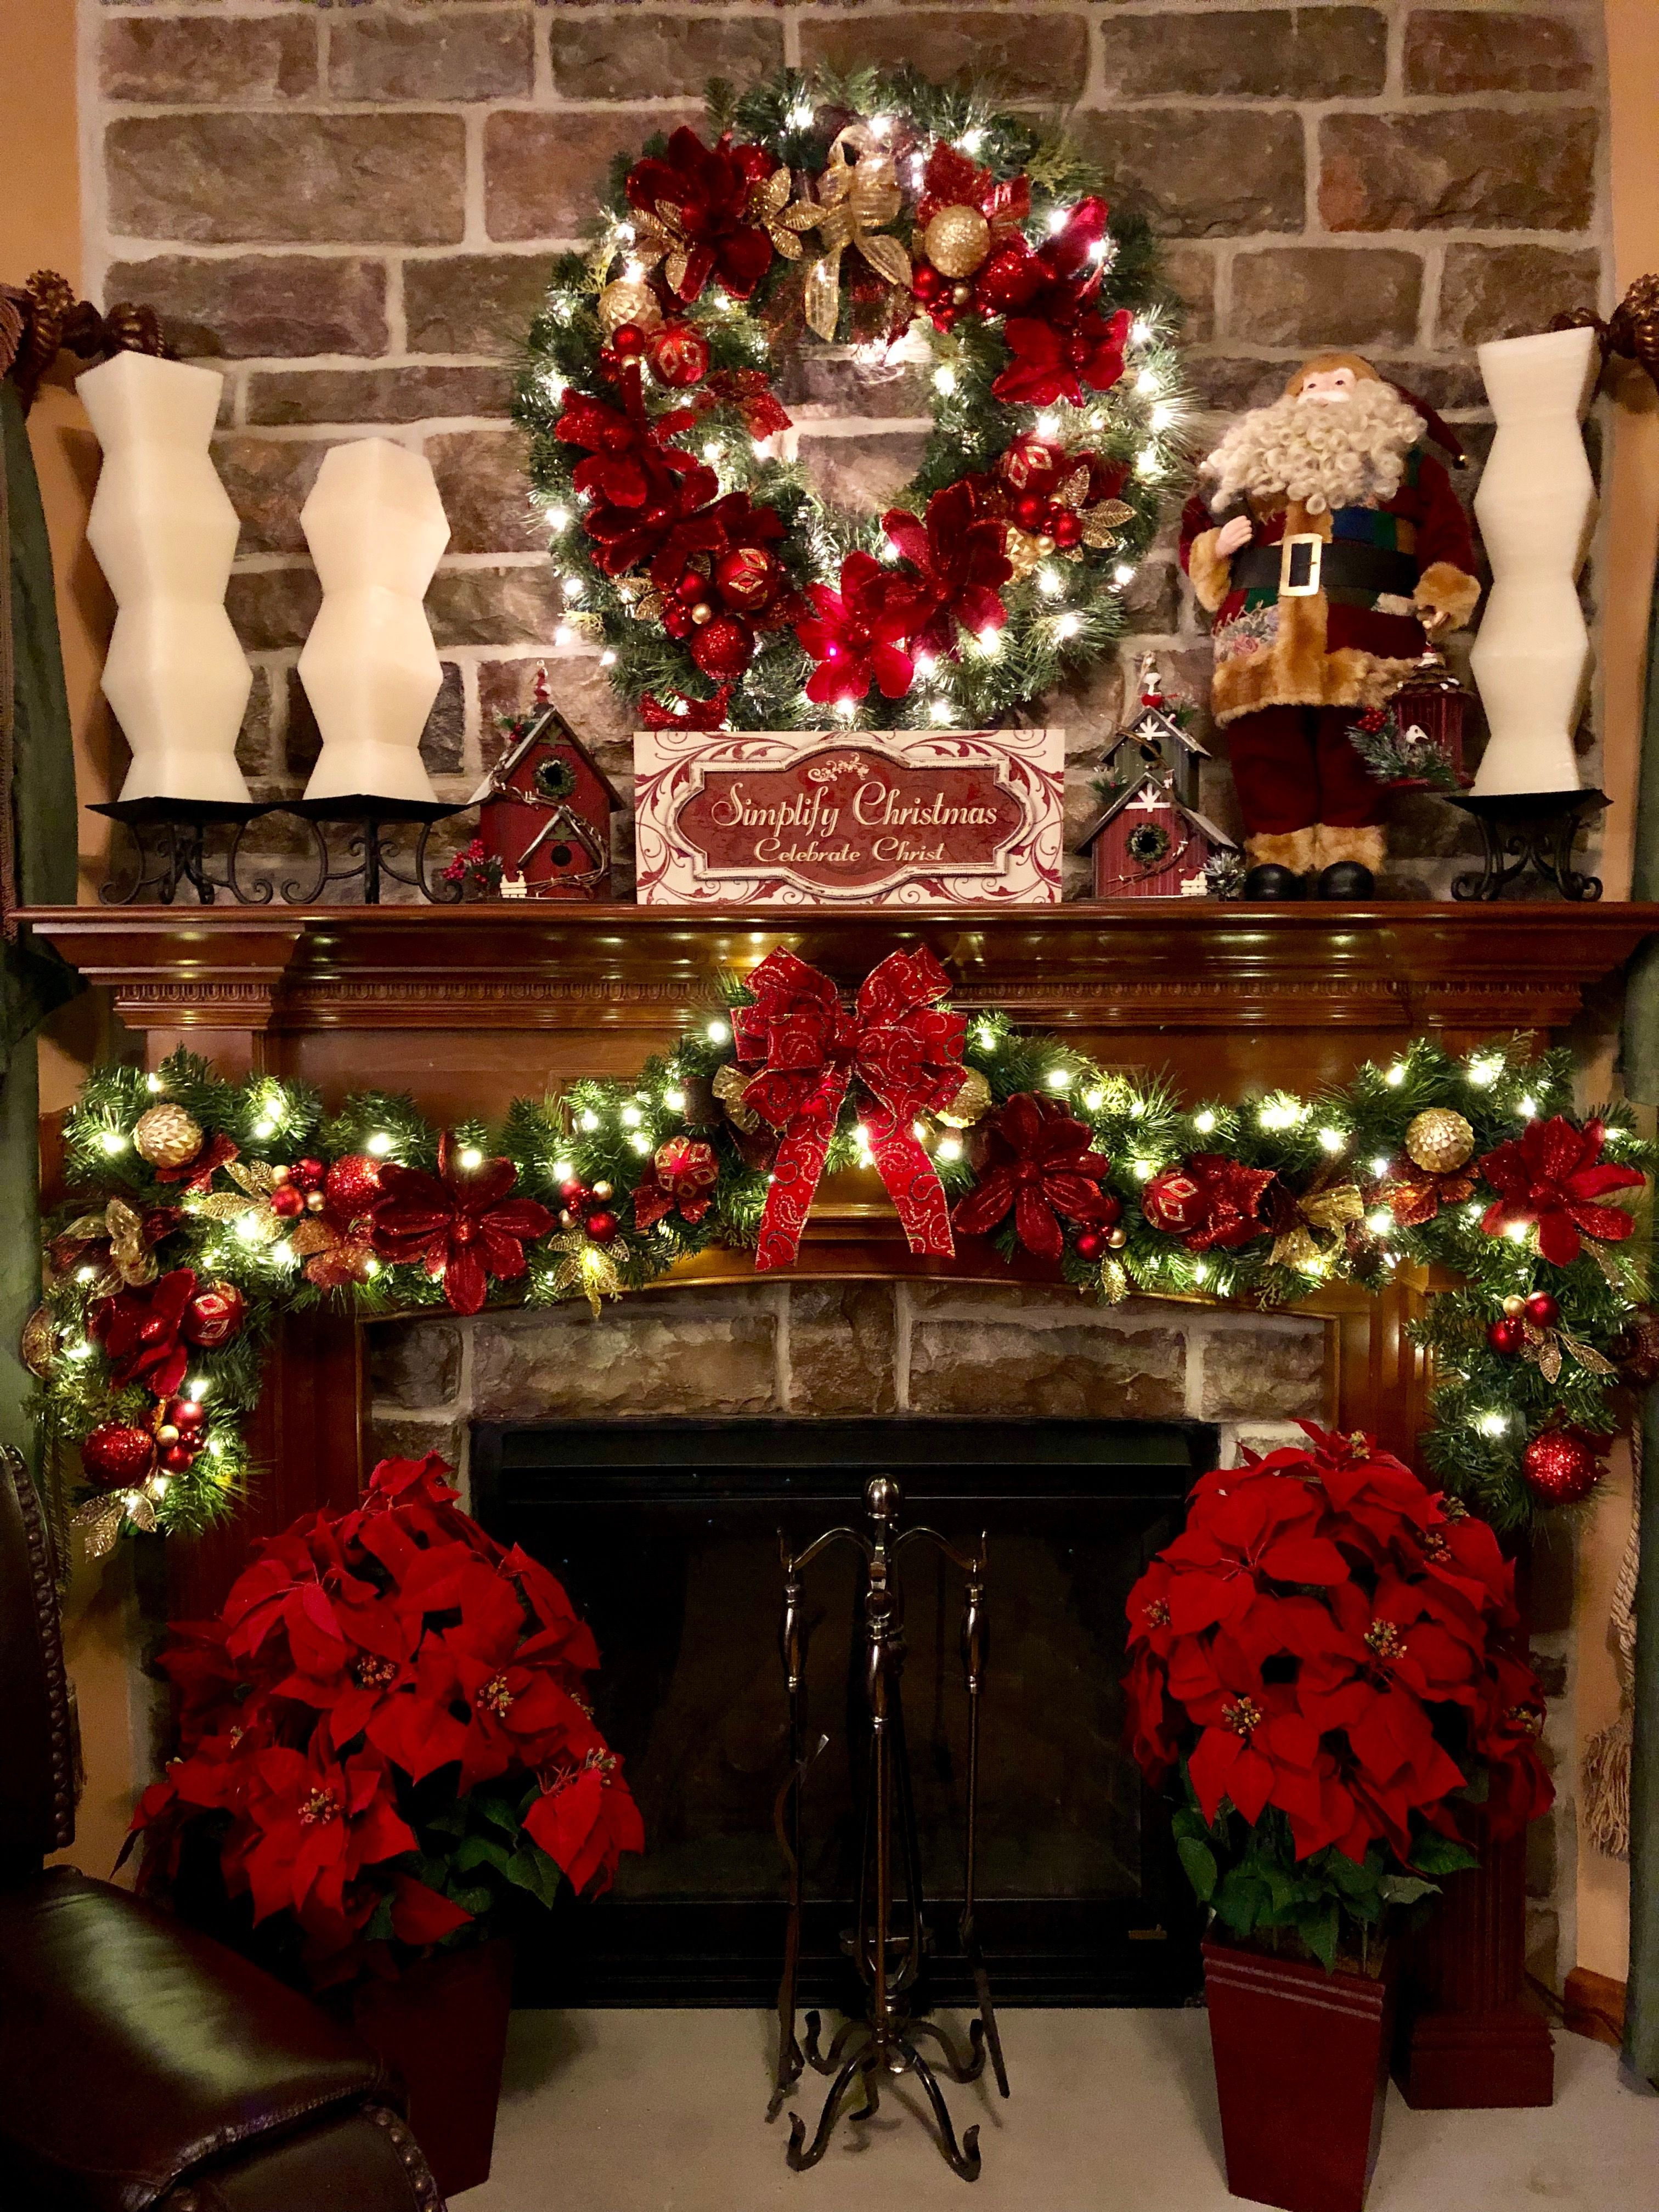 My beautiful fireplace with Christmas decorations 2k18 ...